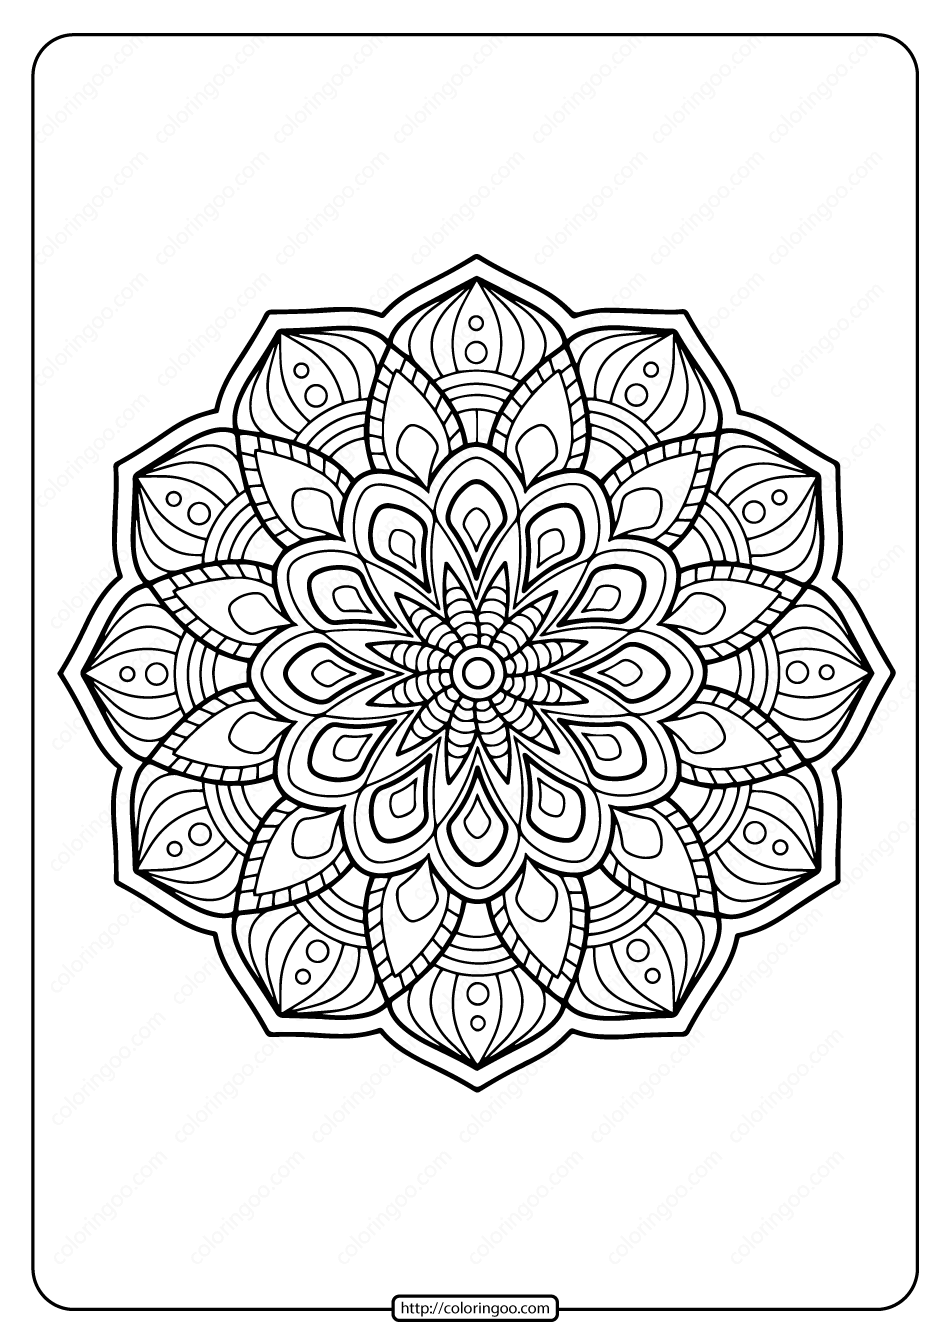 Printable Coloring Book Pages for Adults 009